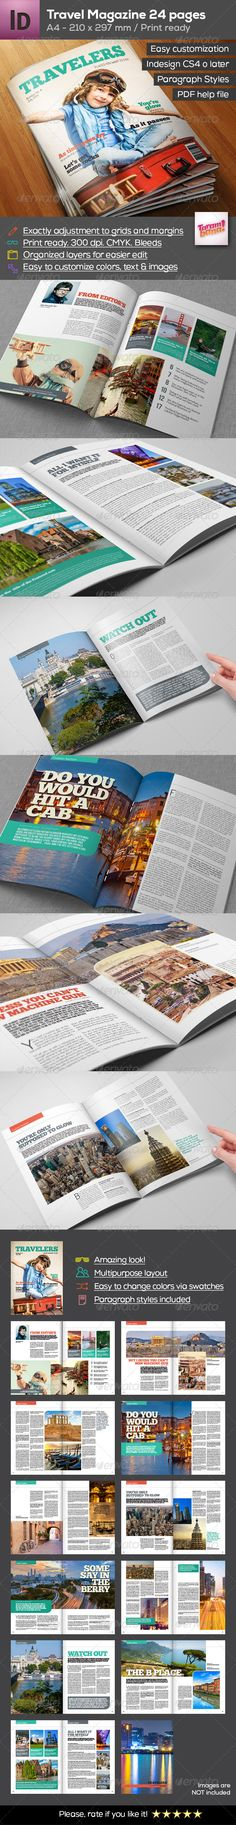 A4 Travel Magazine 24 pages — InDesign INDD #stylish #worldwide • Available here → https://graphicriver.net/item/a4-travel-magazine-24-pages/8473611?ref=pxcr